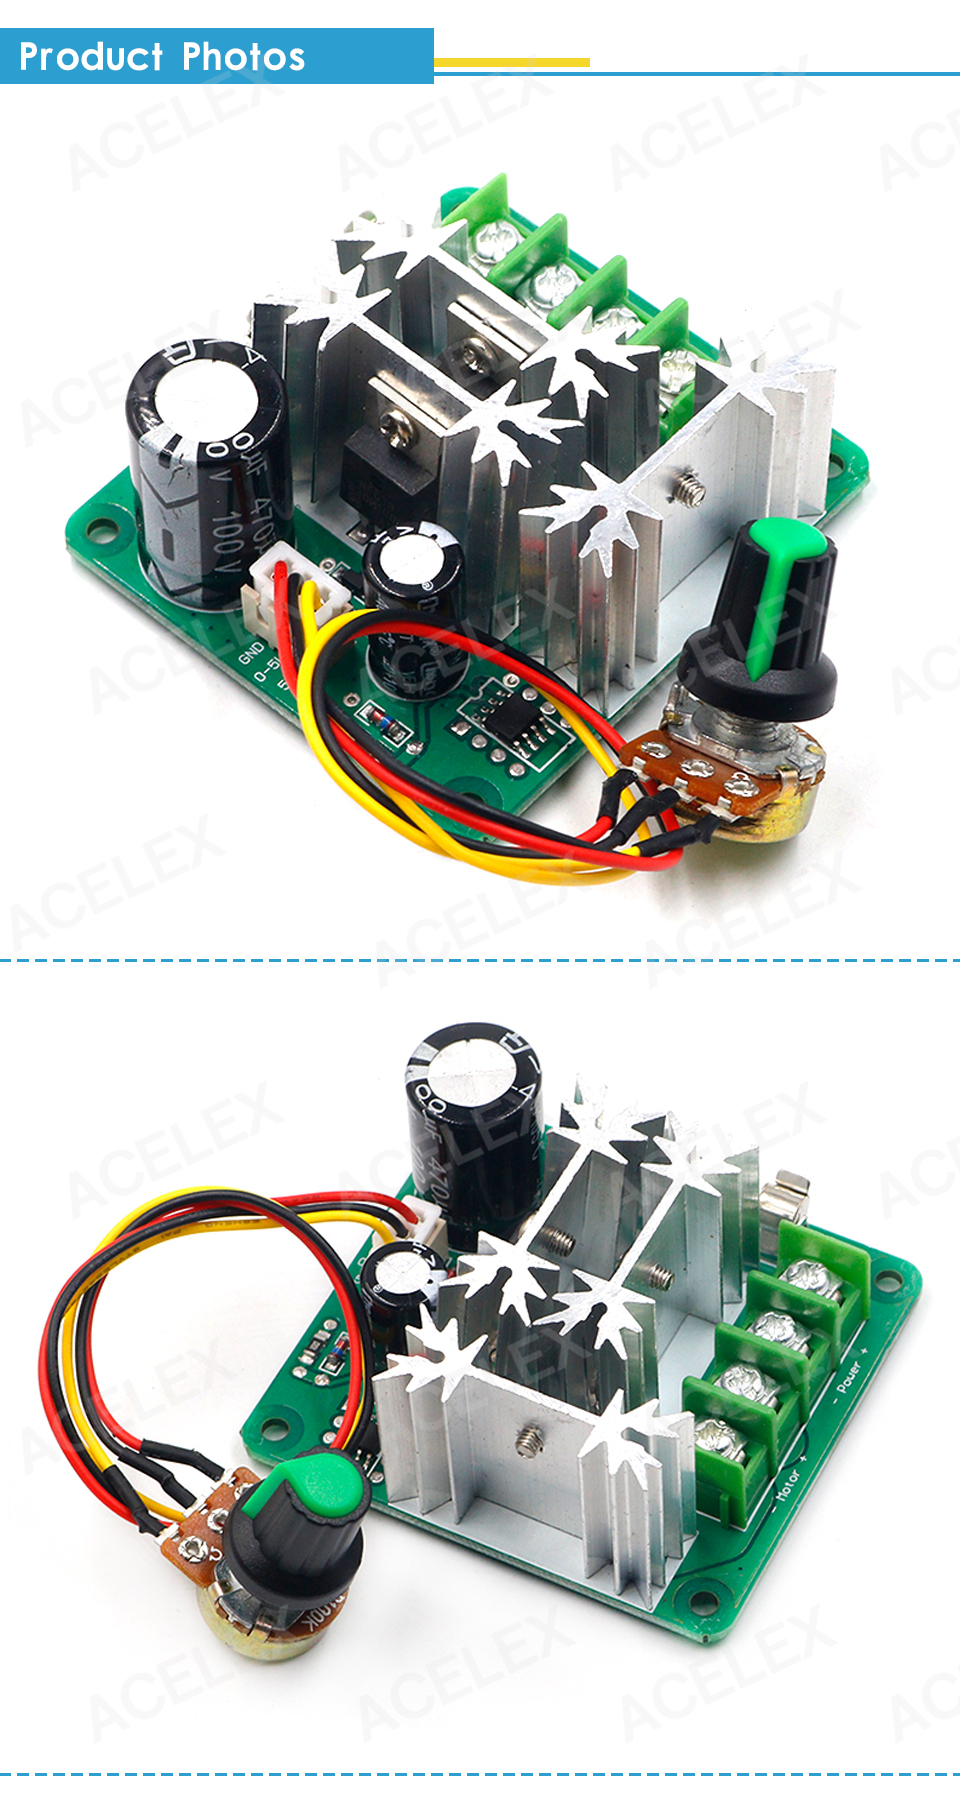 H0a2d2e7550ec47c486b2a3e93ebee584R - DC 6V-90V 15A DC Motor Speed Controller Stepless Speed Regulation Pulse Width PWM DC 12V 24V 36V 48V 1000W